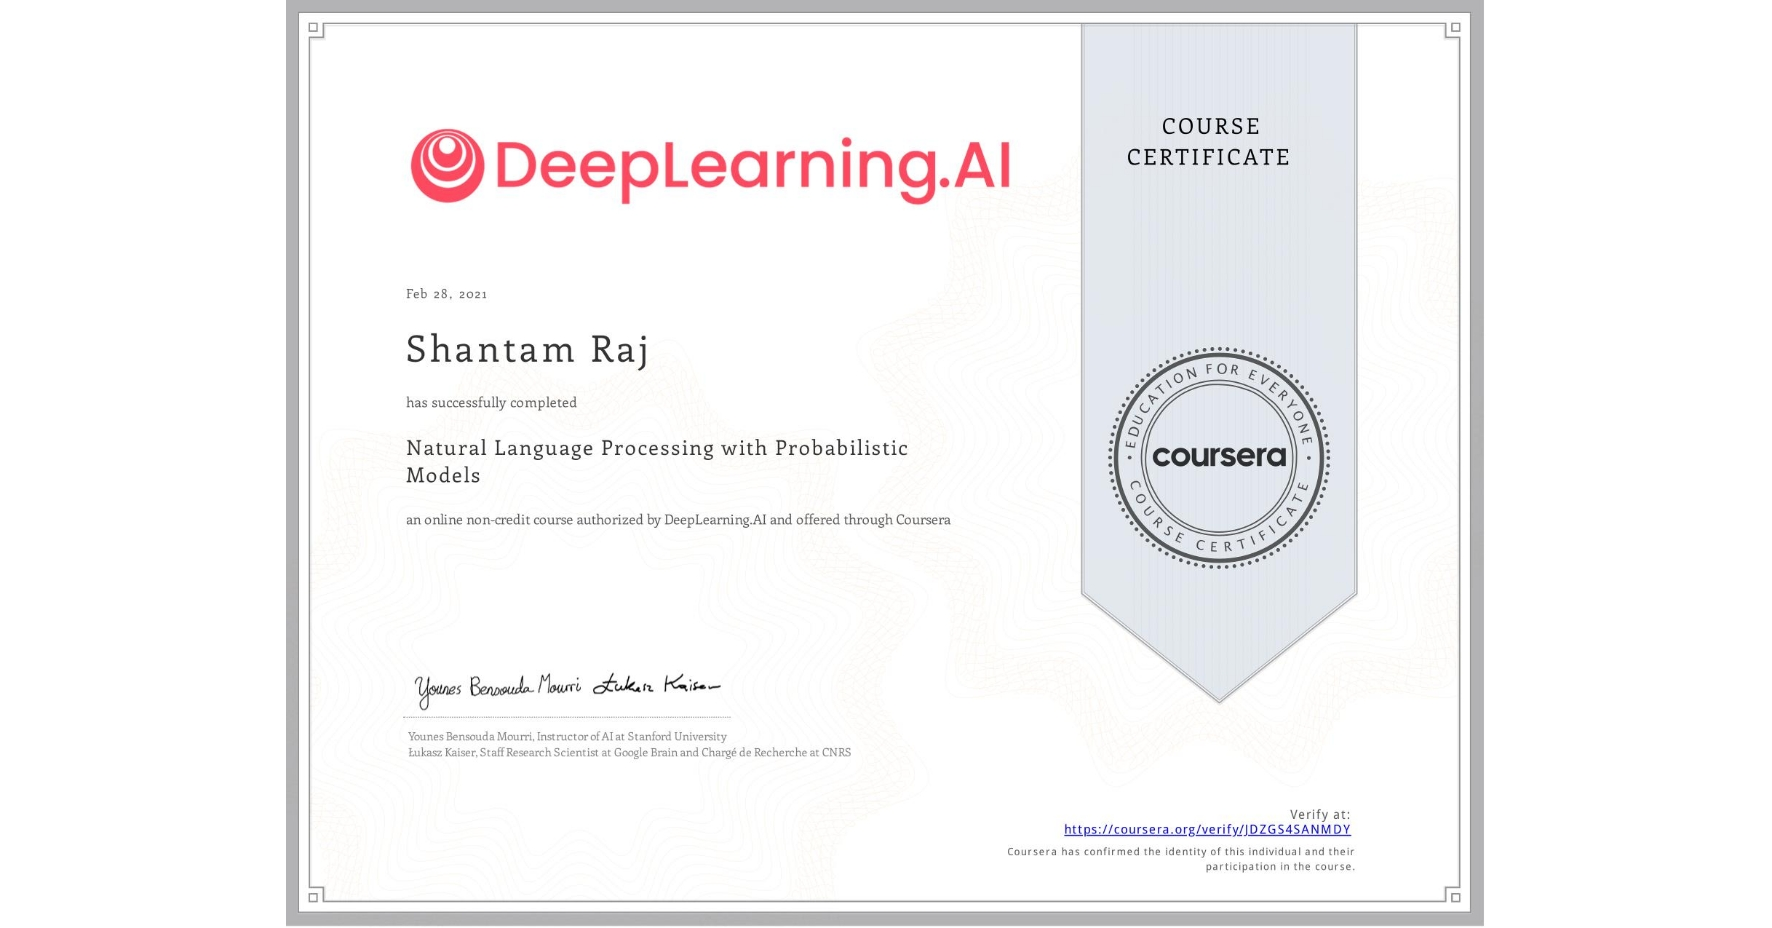 View certificate for Shantam Raj, Natural Language Processing with Probabilistic Models, an online non-credit course authorized by DeepLearning.AI and offered through Coursera